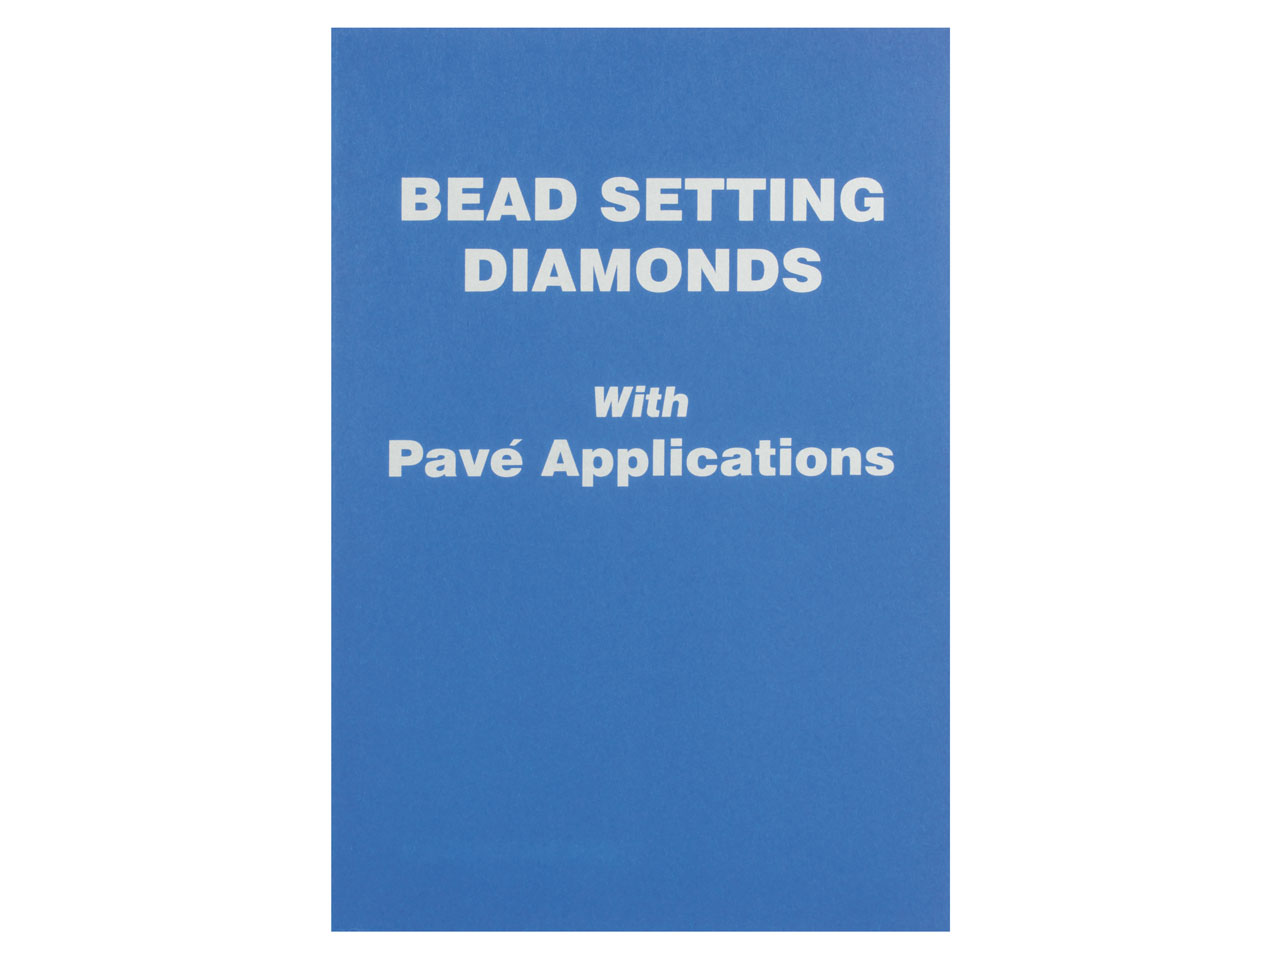 Bead Setting Diamonds With Pave Applications Di Robert R. Wooding